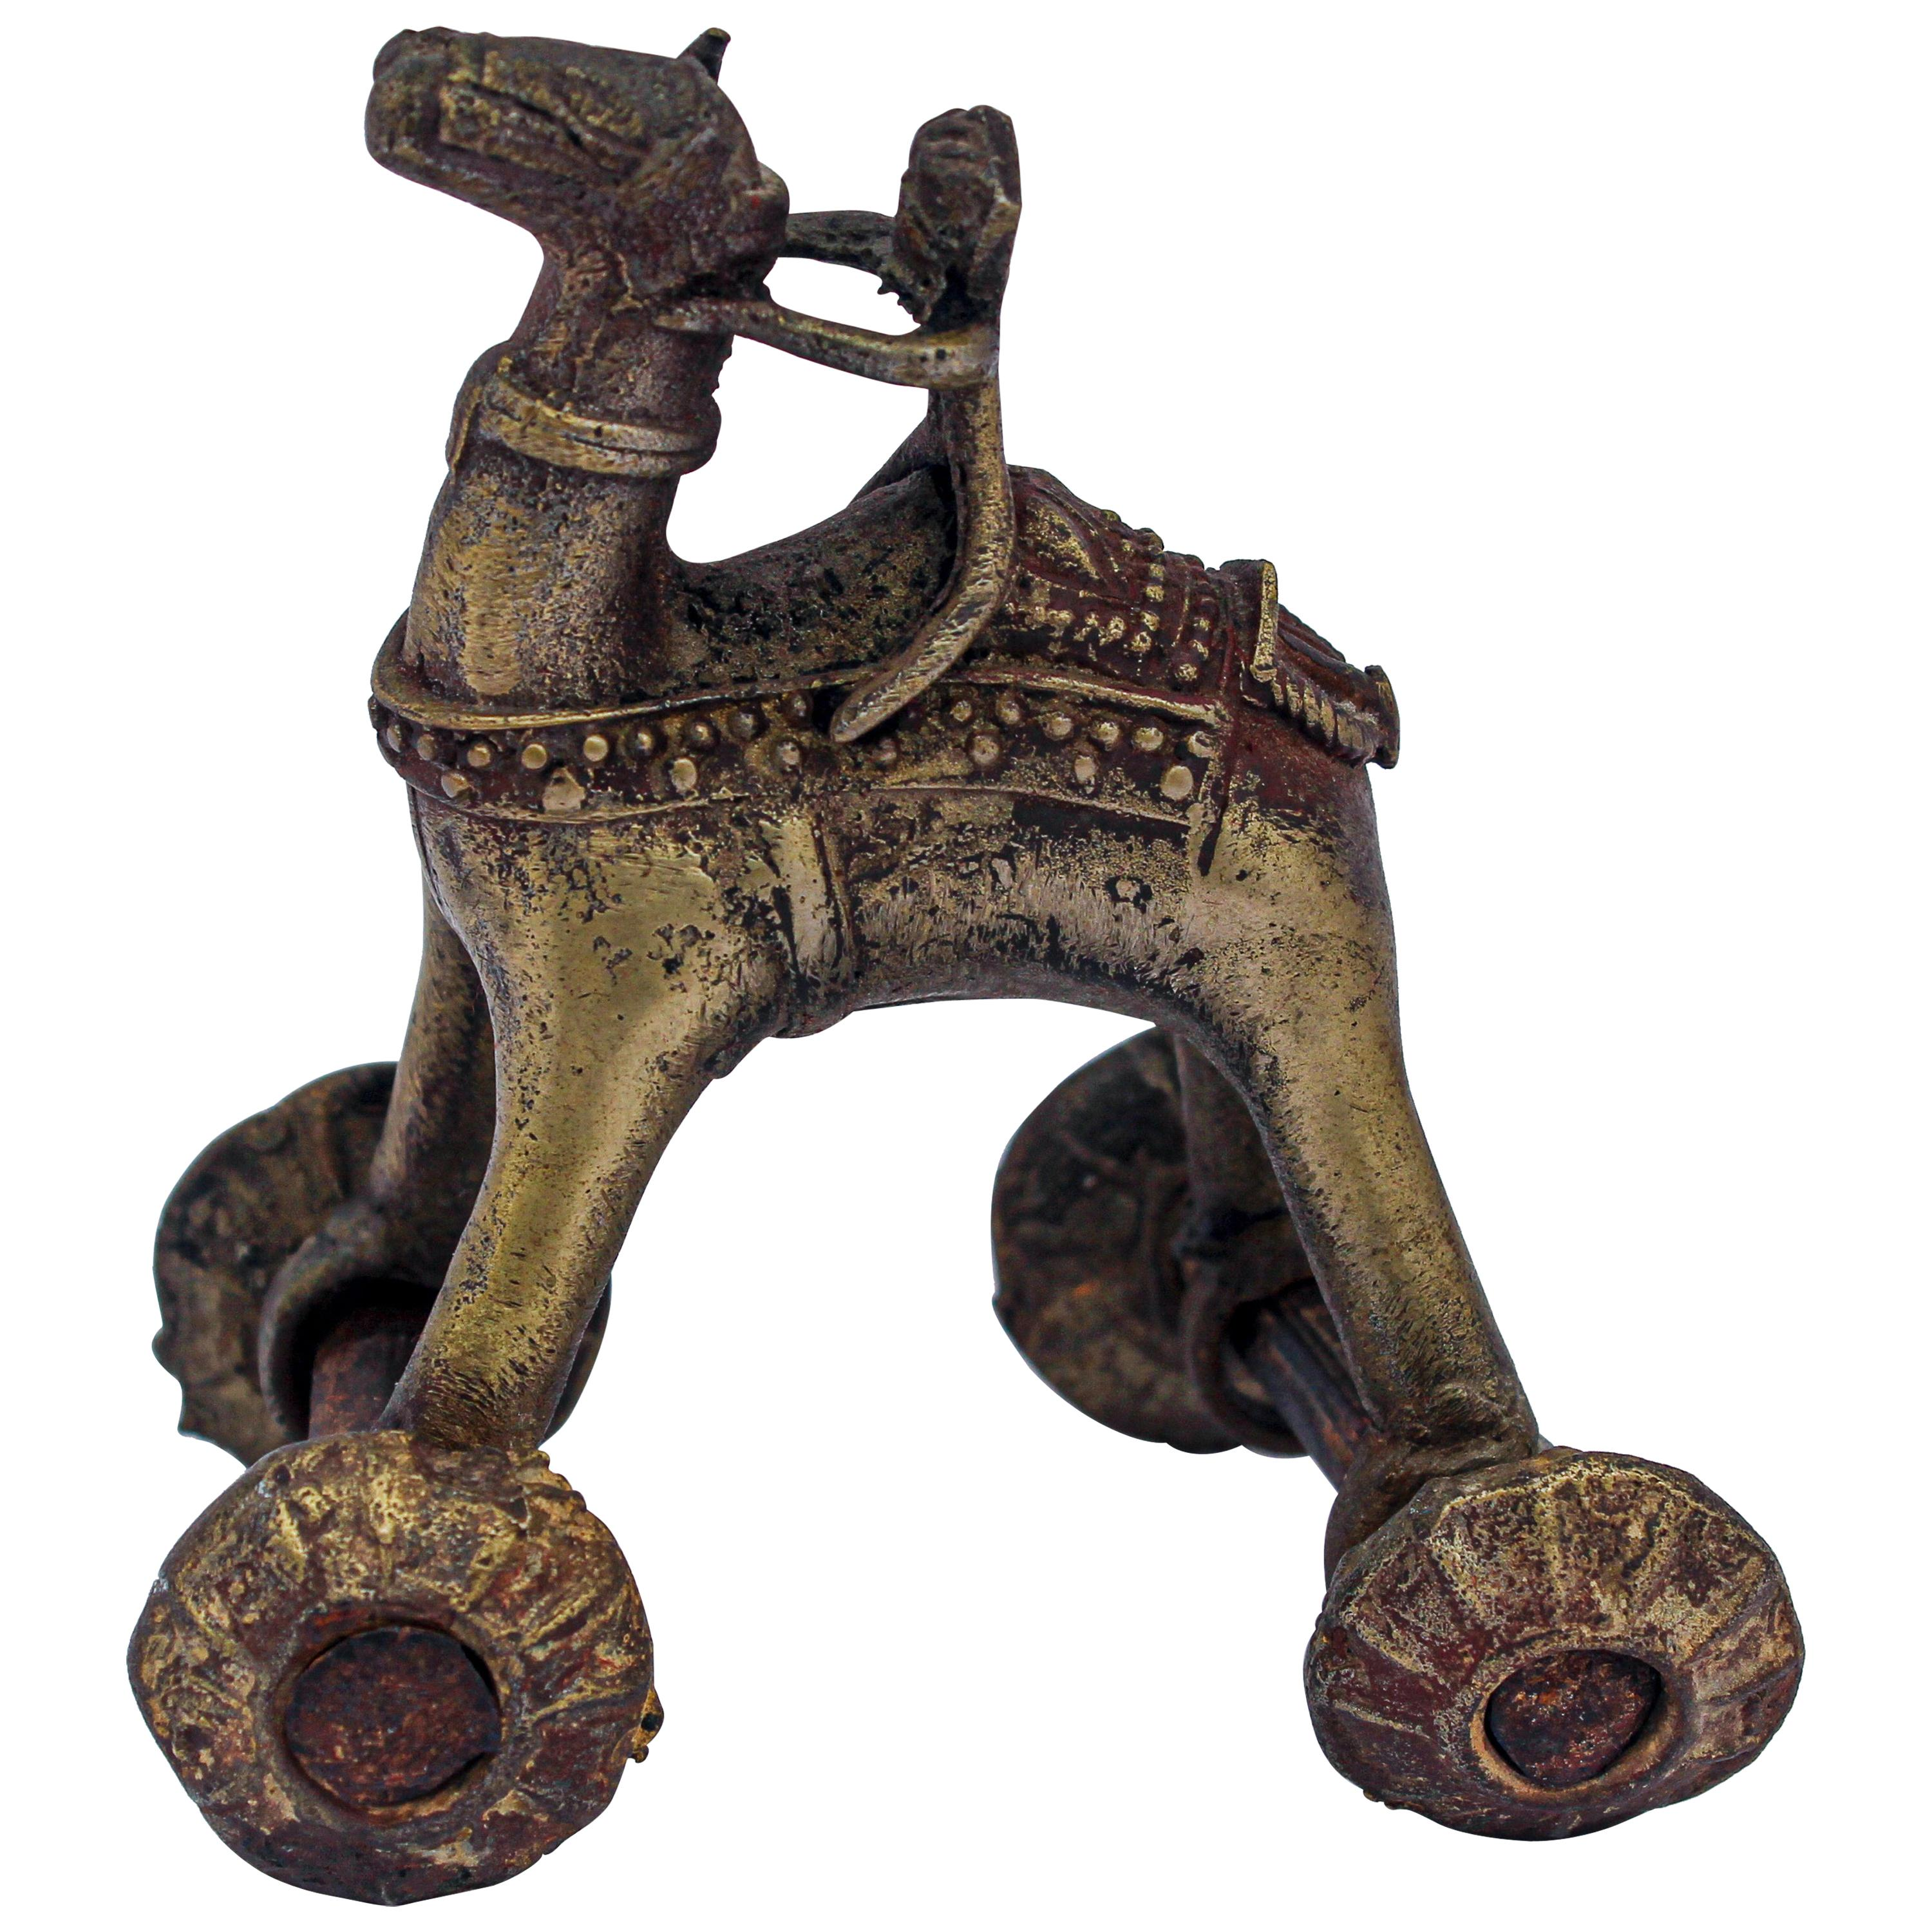 Antique Asian Bronze Toy Camel on Wheels